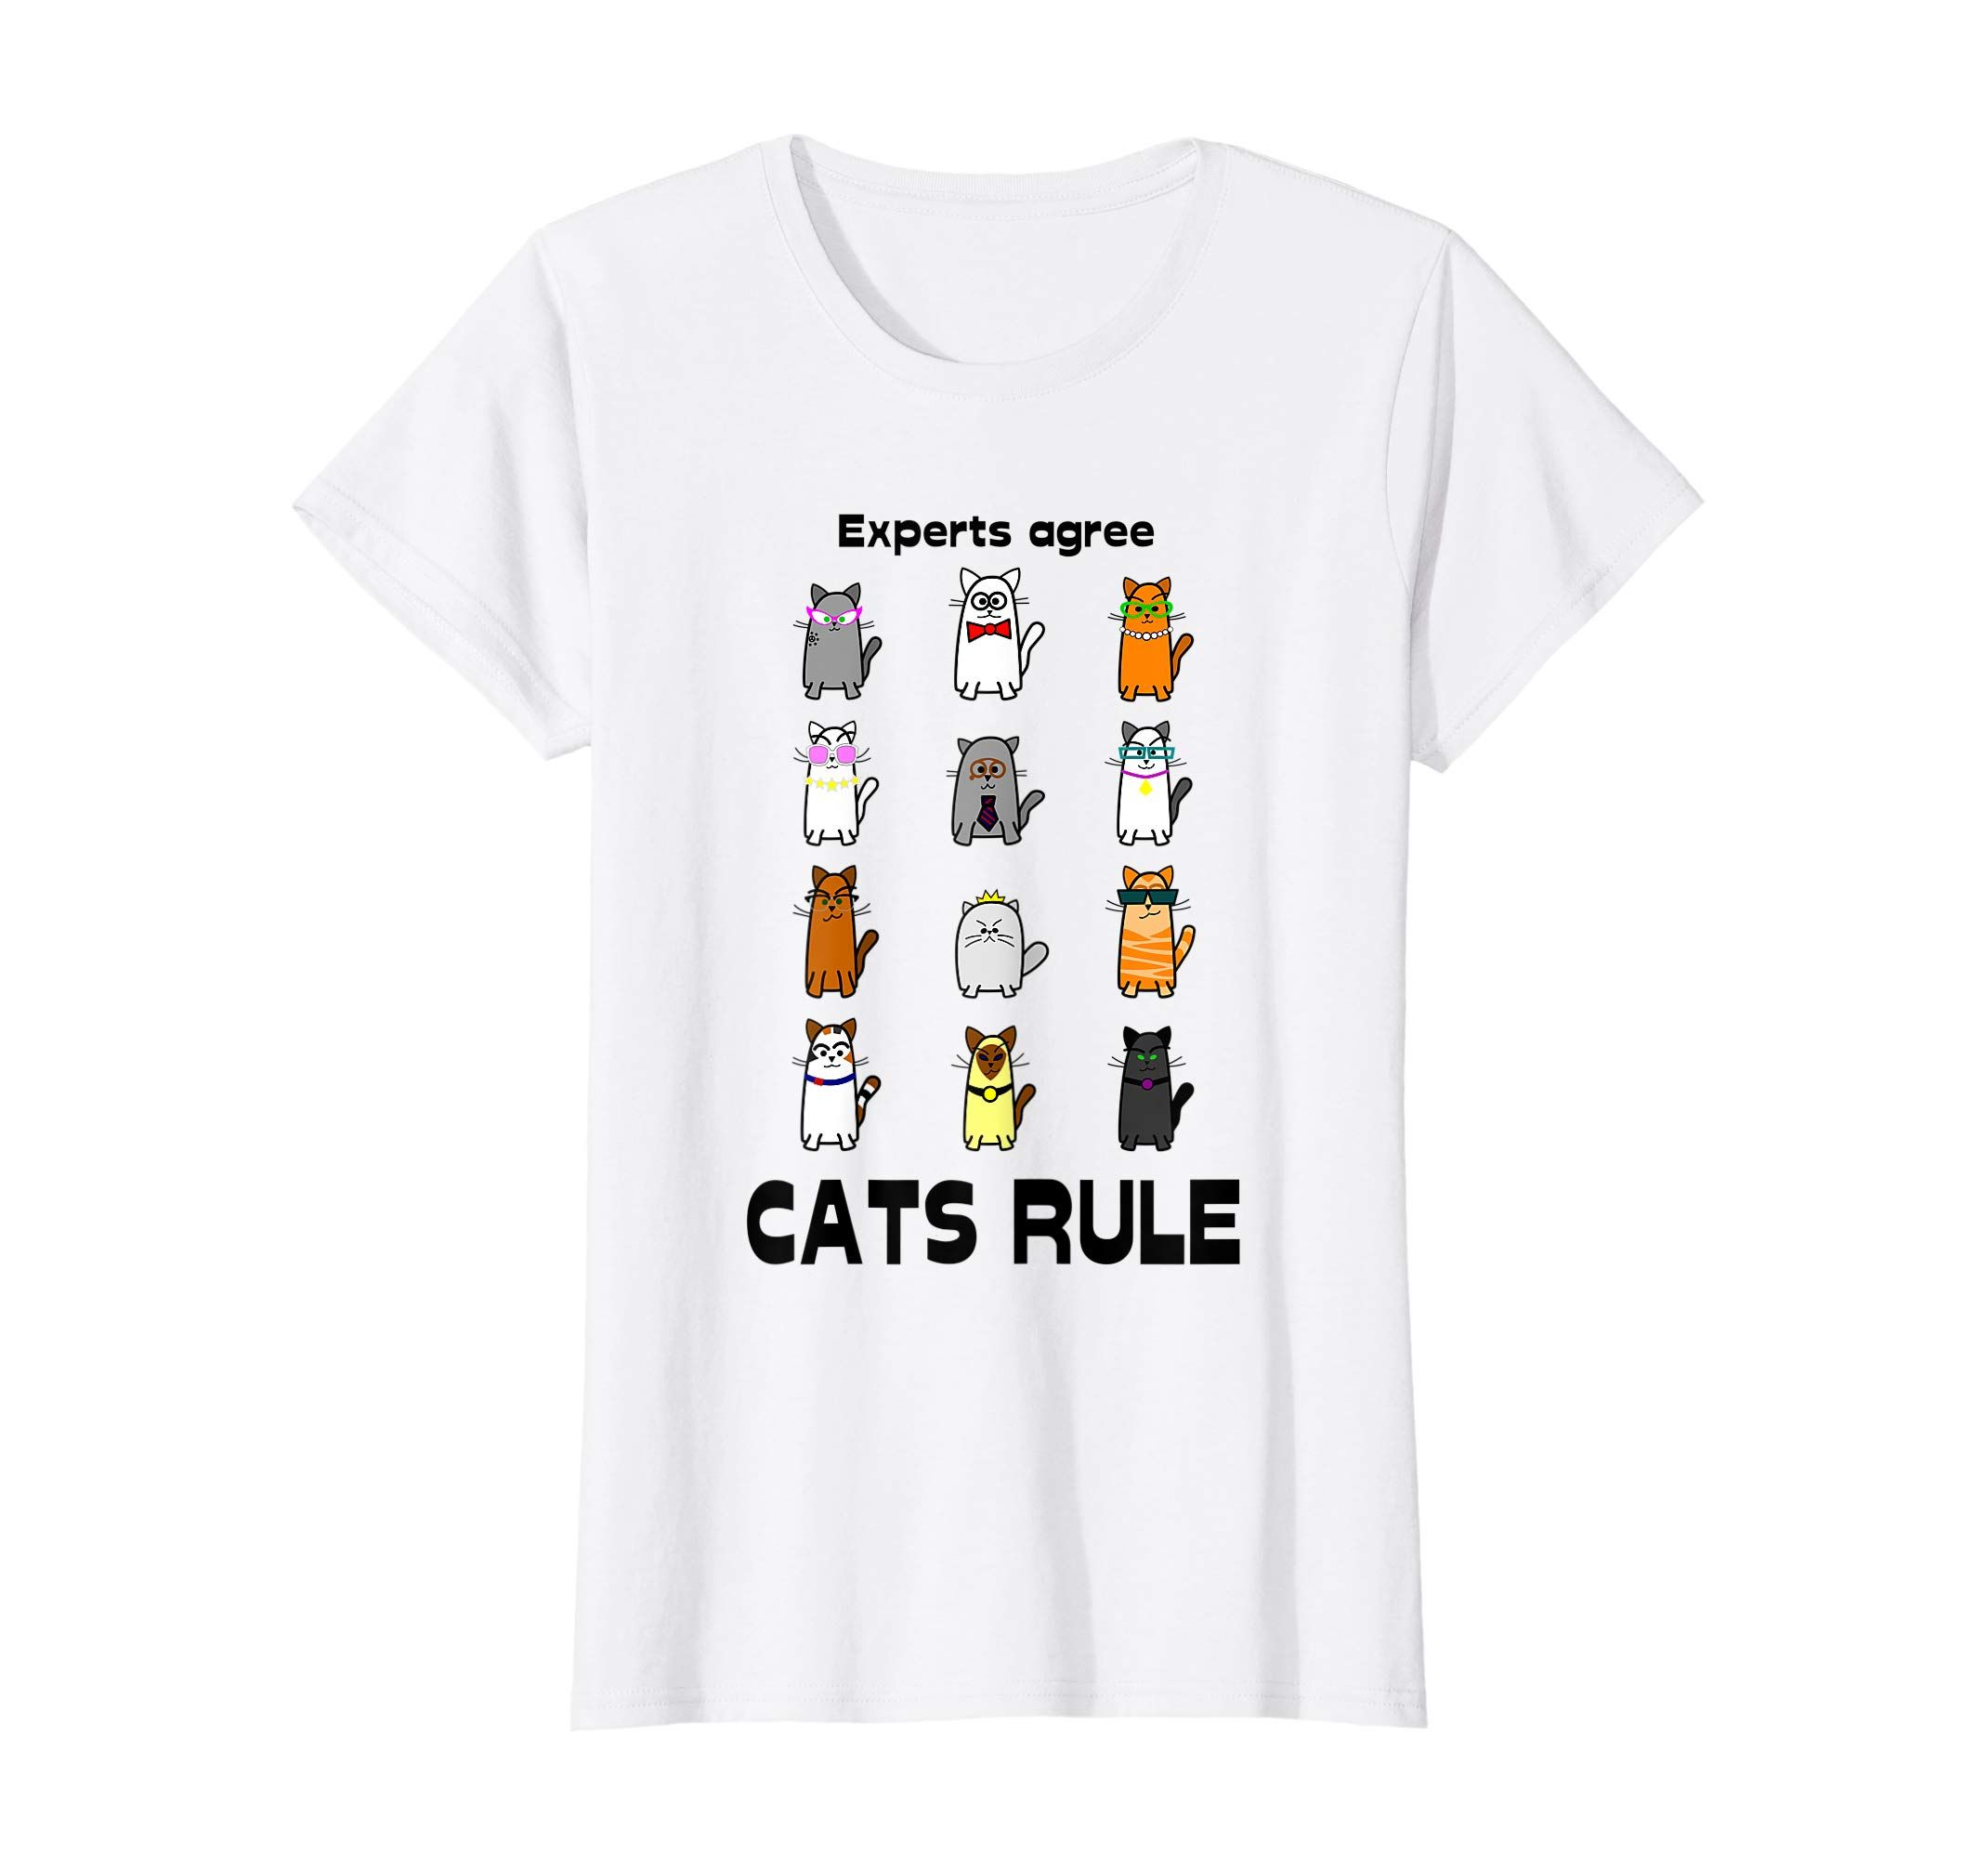 This Cute Cat Experts Say That Cats Rule T Shirt Is Great